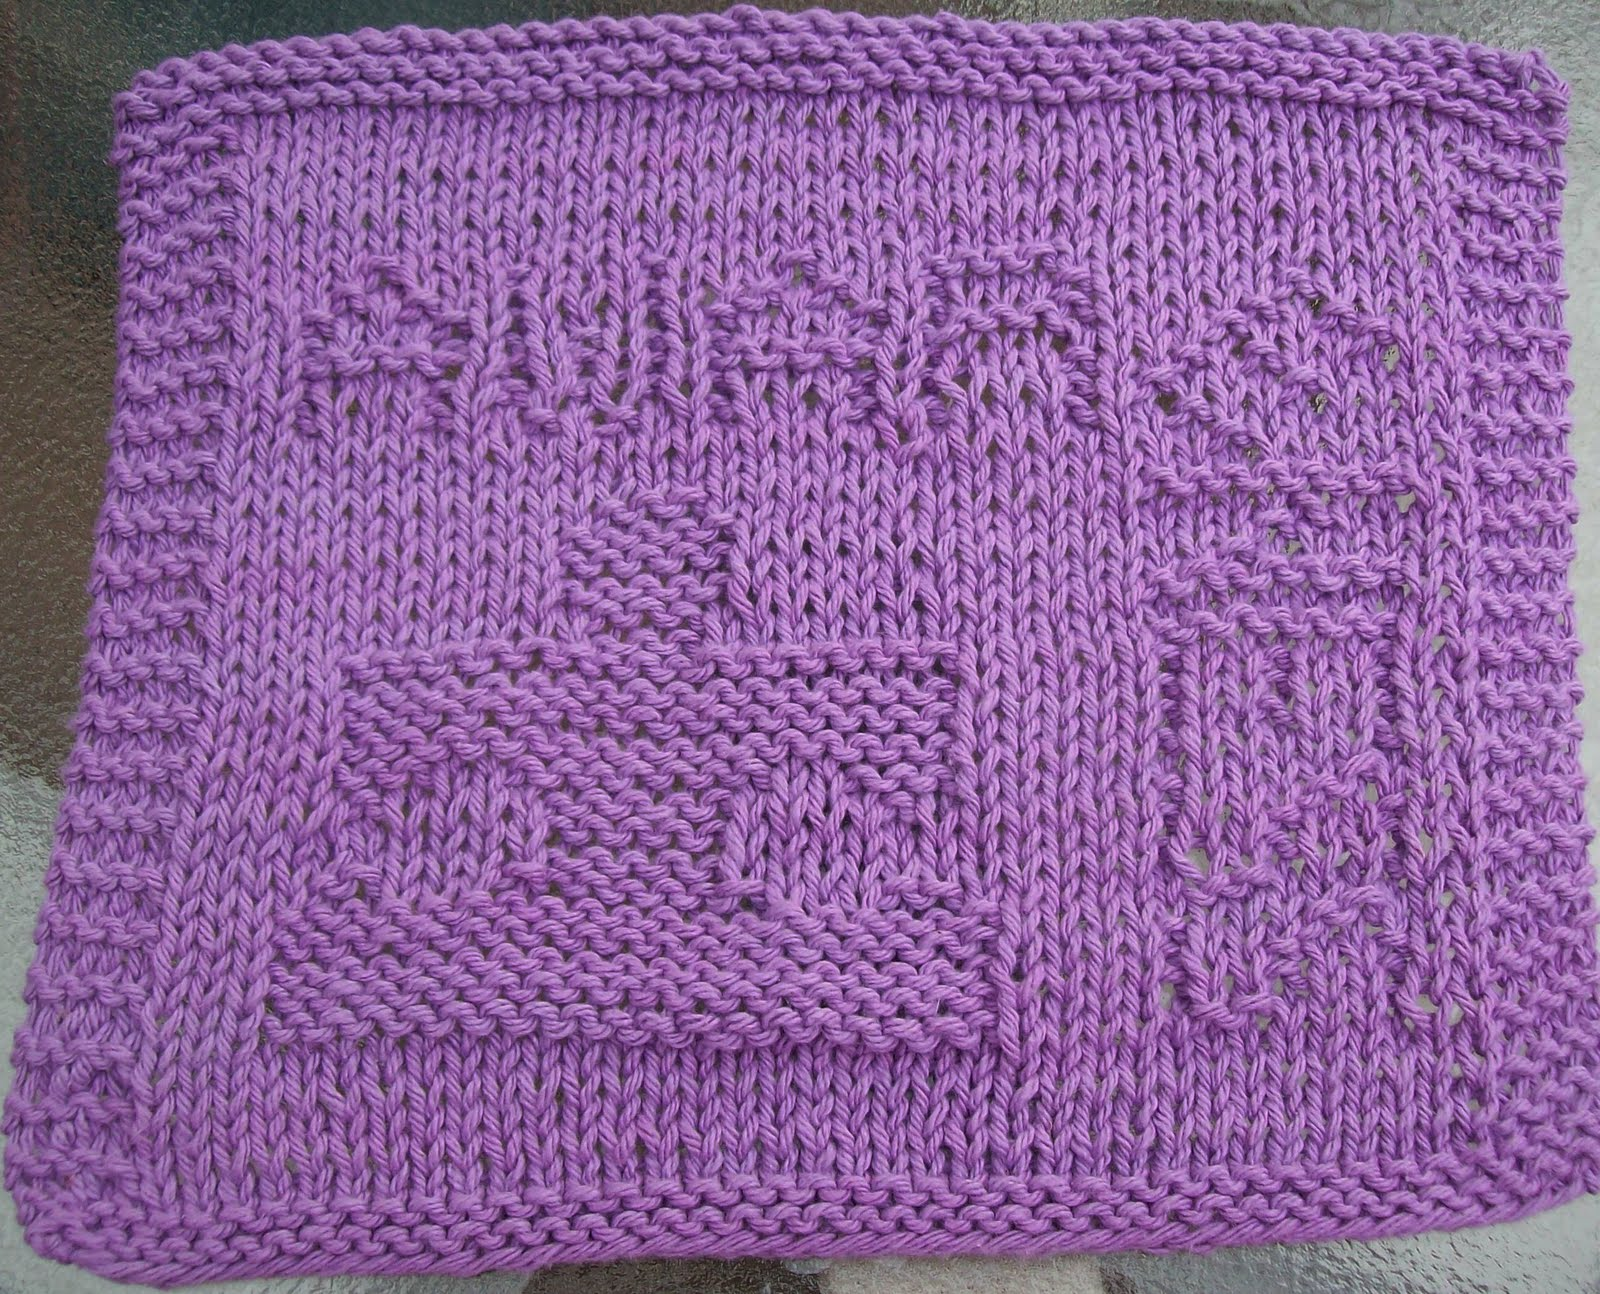 Dishcloth Knit Patterns Free : DigKnitty Designs: Autism Awareness * Free* Knit Dishcloth Pattern